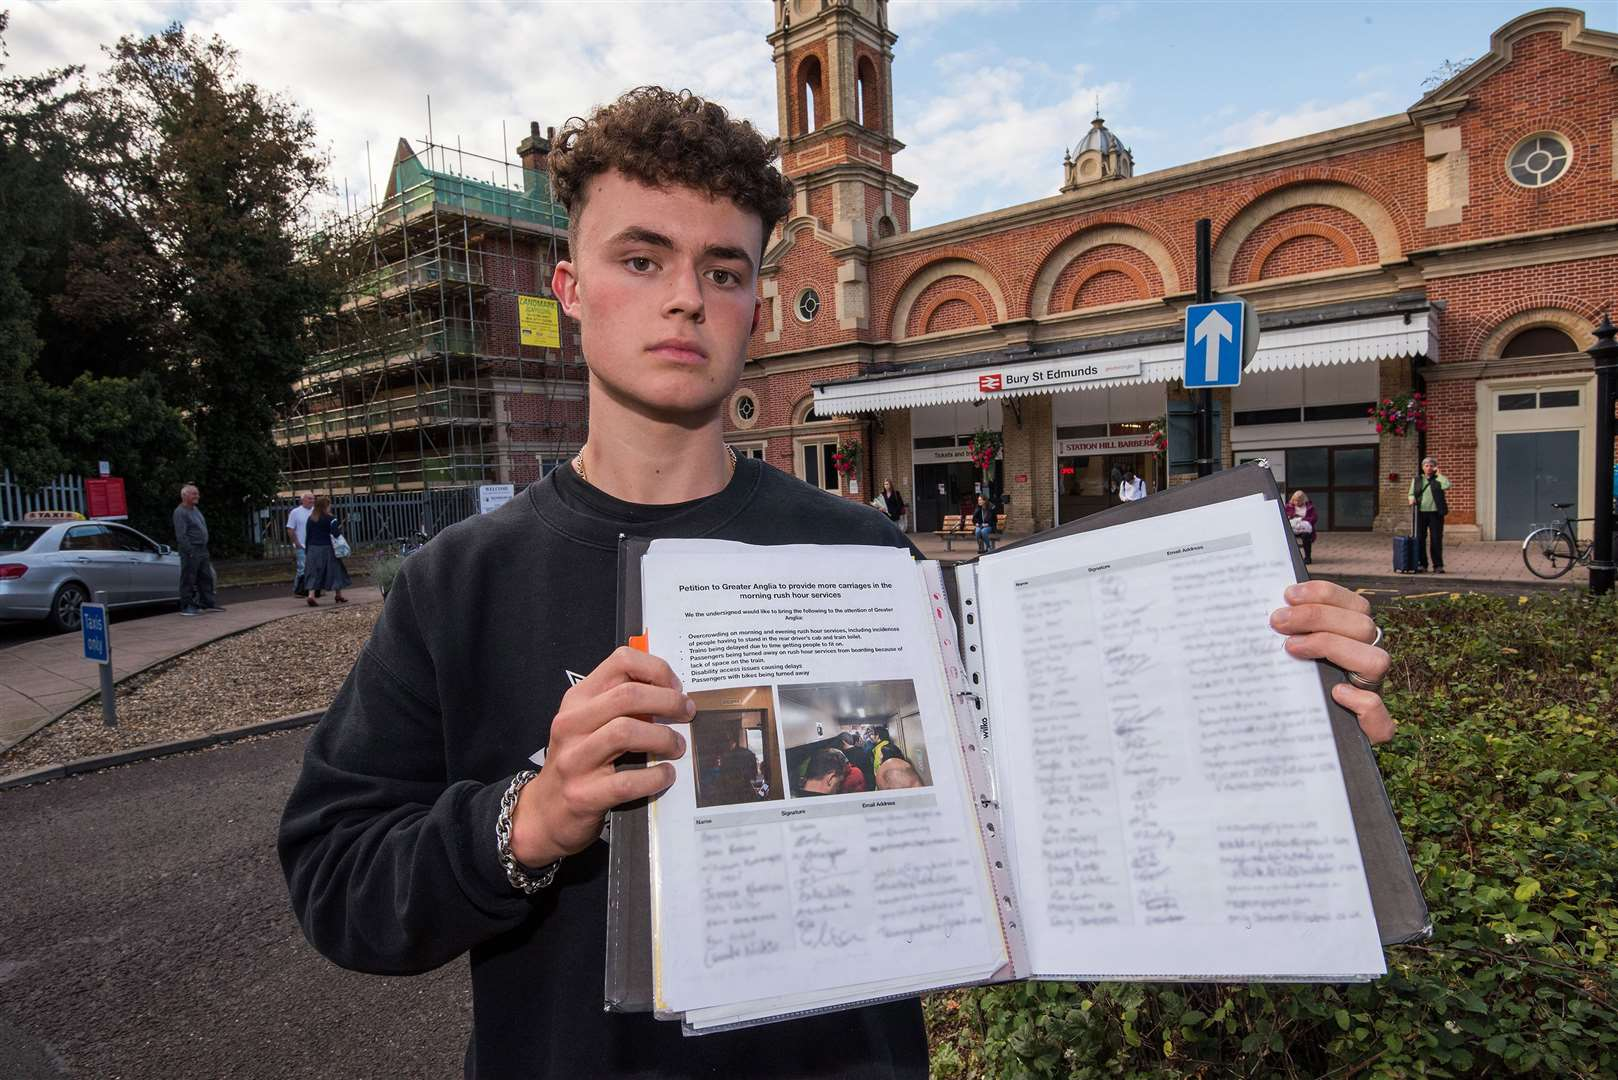 Oscar Hedge with his petition outside Bury St Edmunds railway station